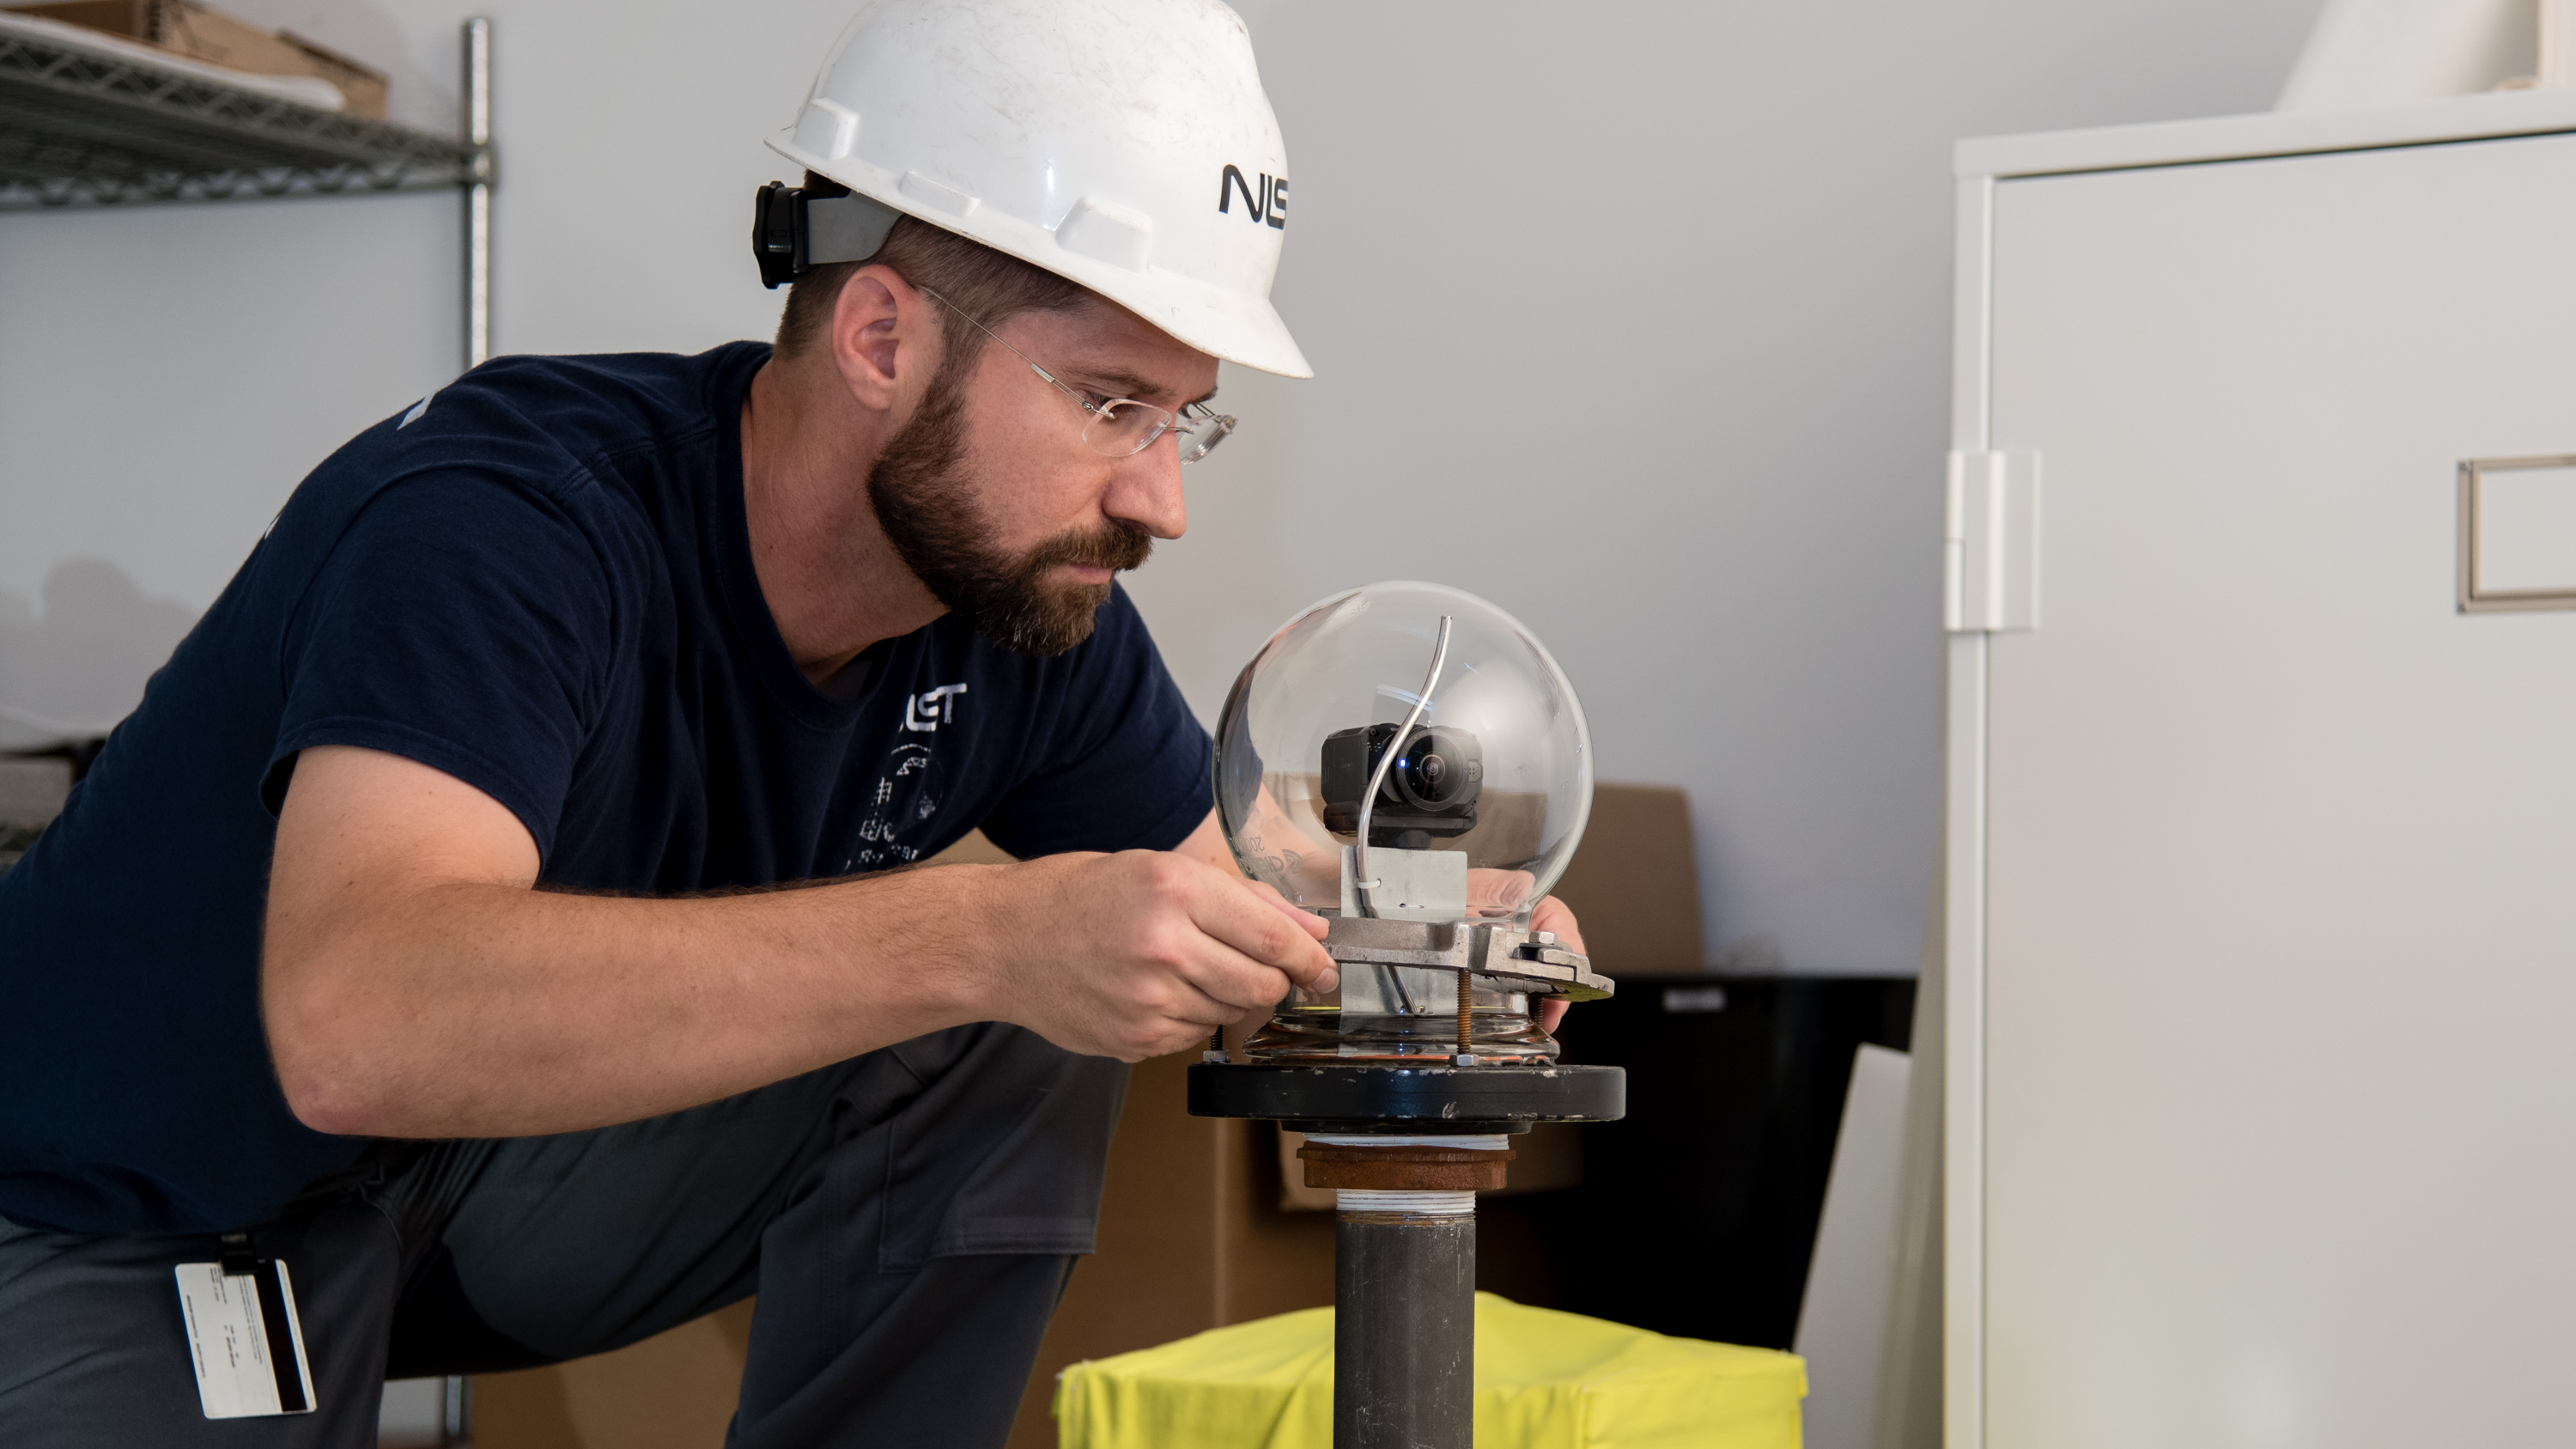 man with a beard, safety glasses, hard hat and blue shirt places a glass bubble over the top of a camera mounted on a steel pole inside the test room